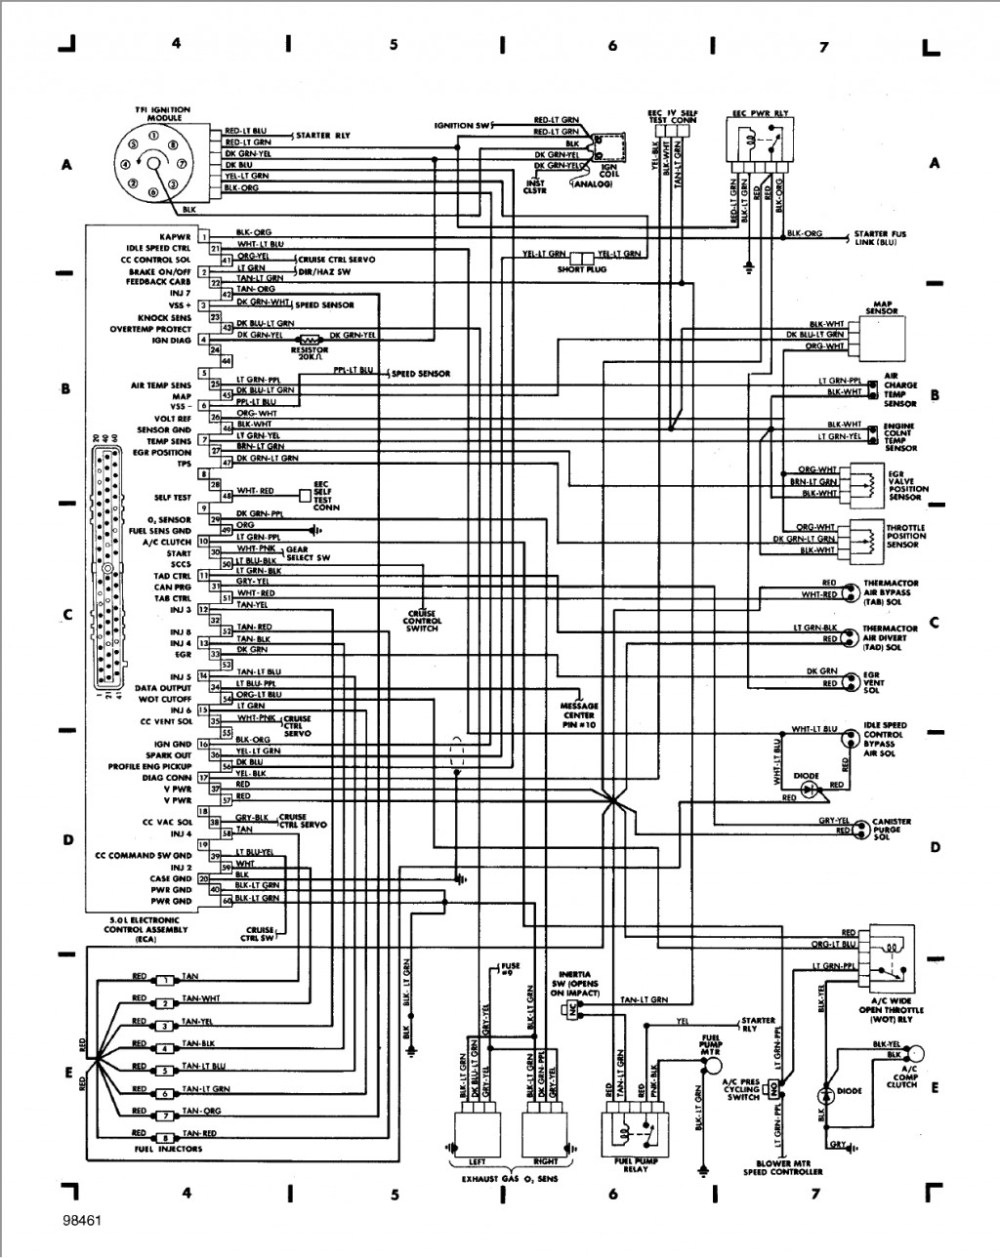 medium resolution of size of car diagram i need an engine wiring diagram forcoln town car am